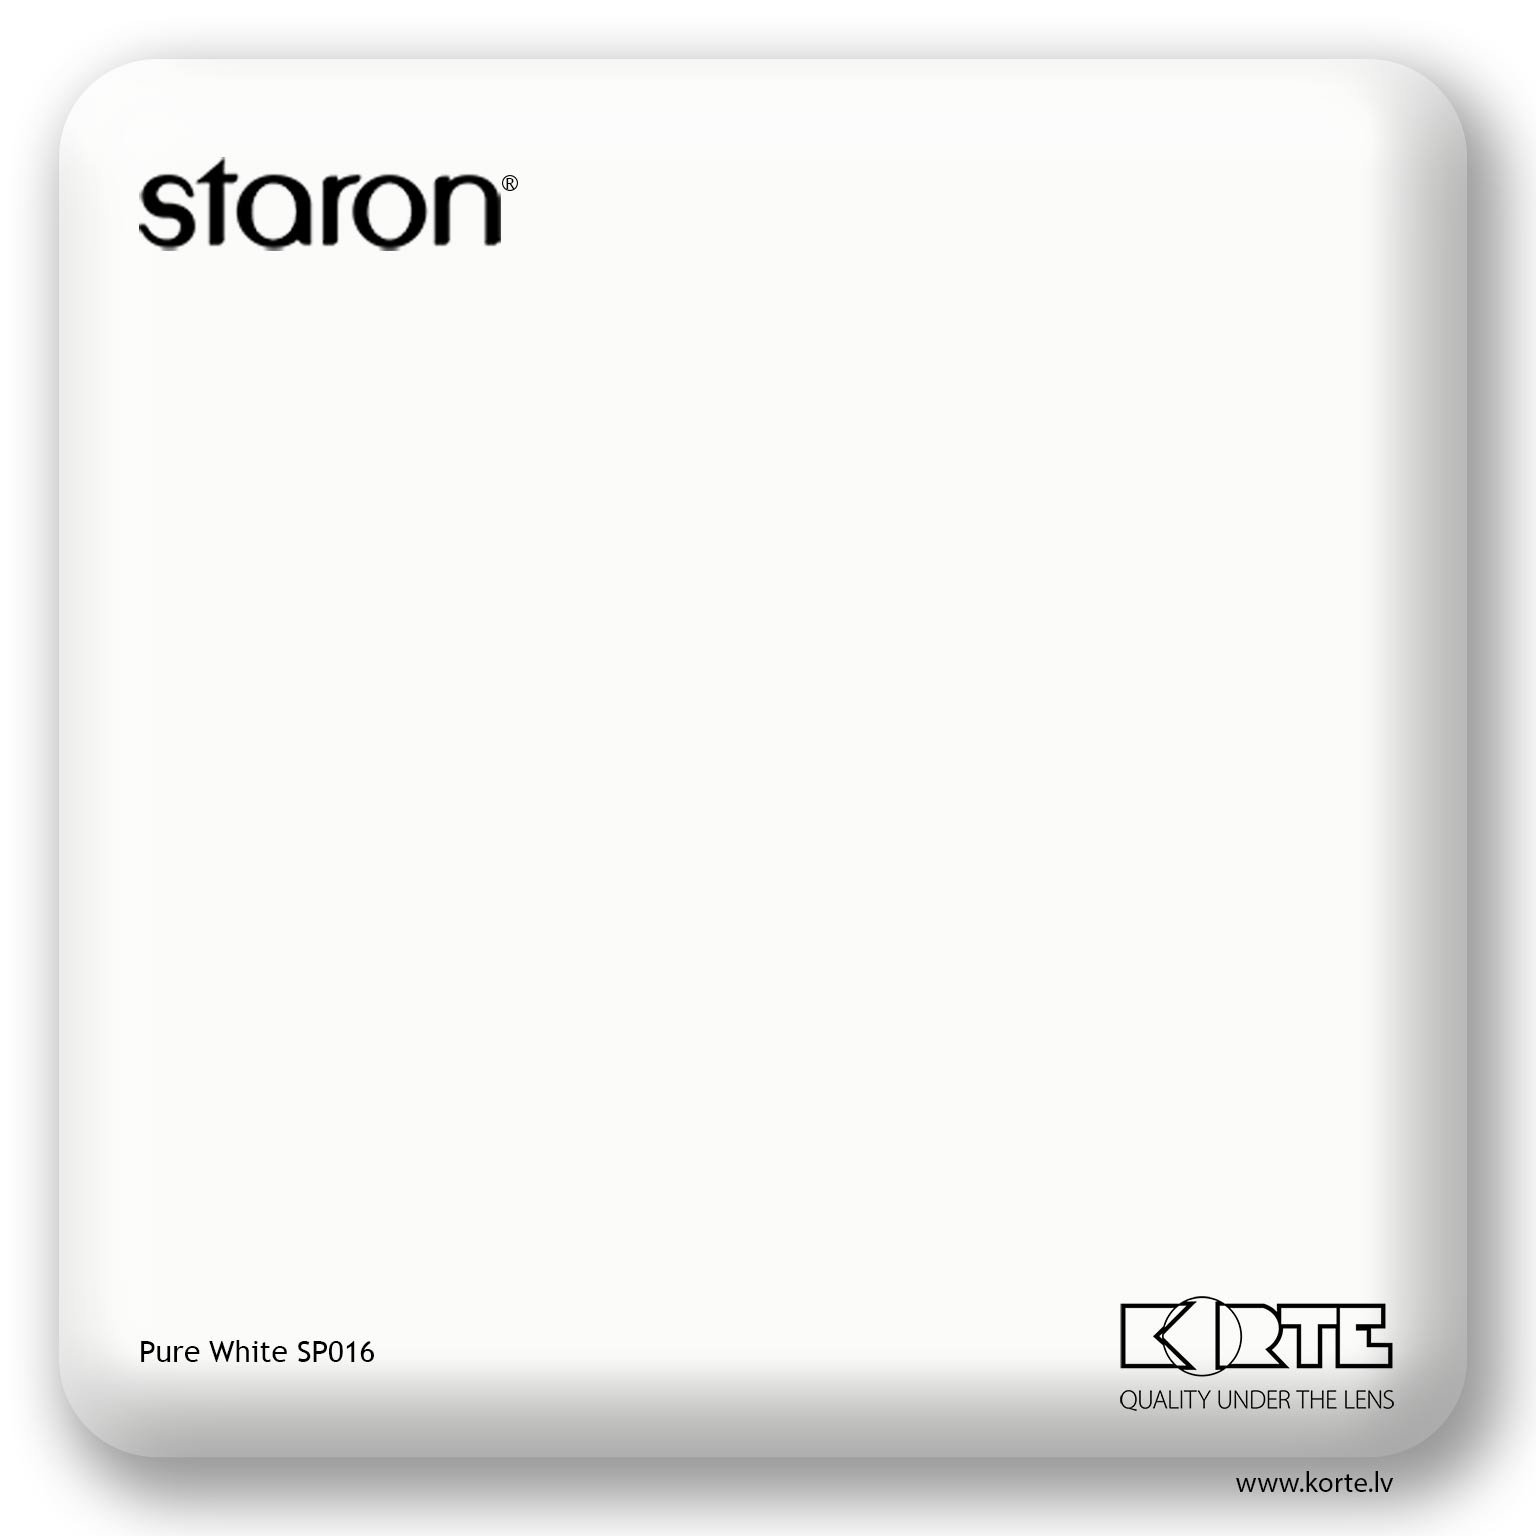 Staron Pure White SP016